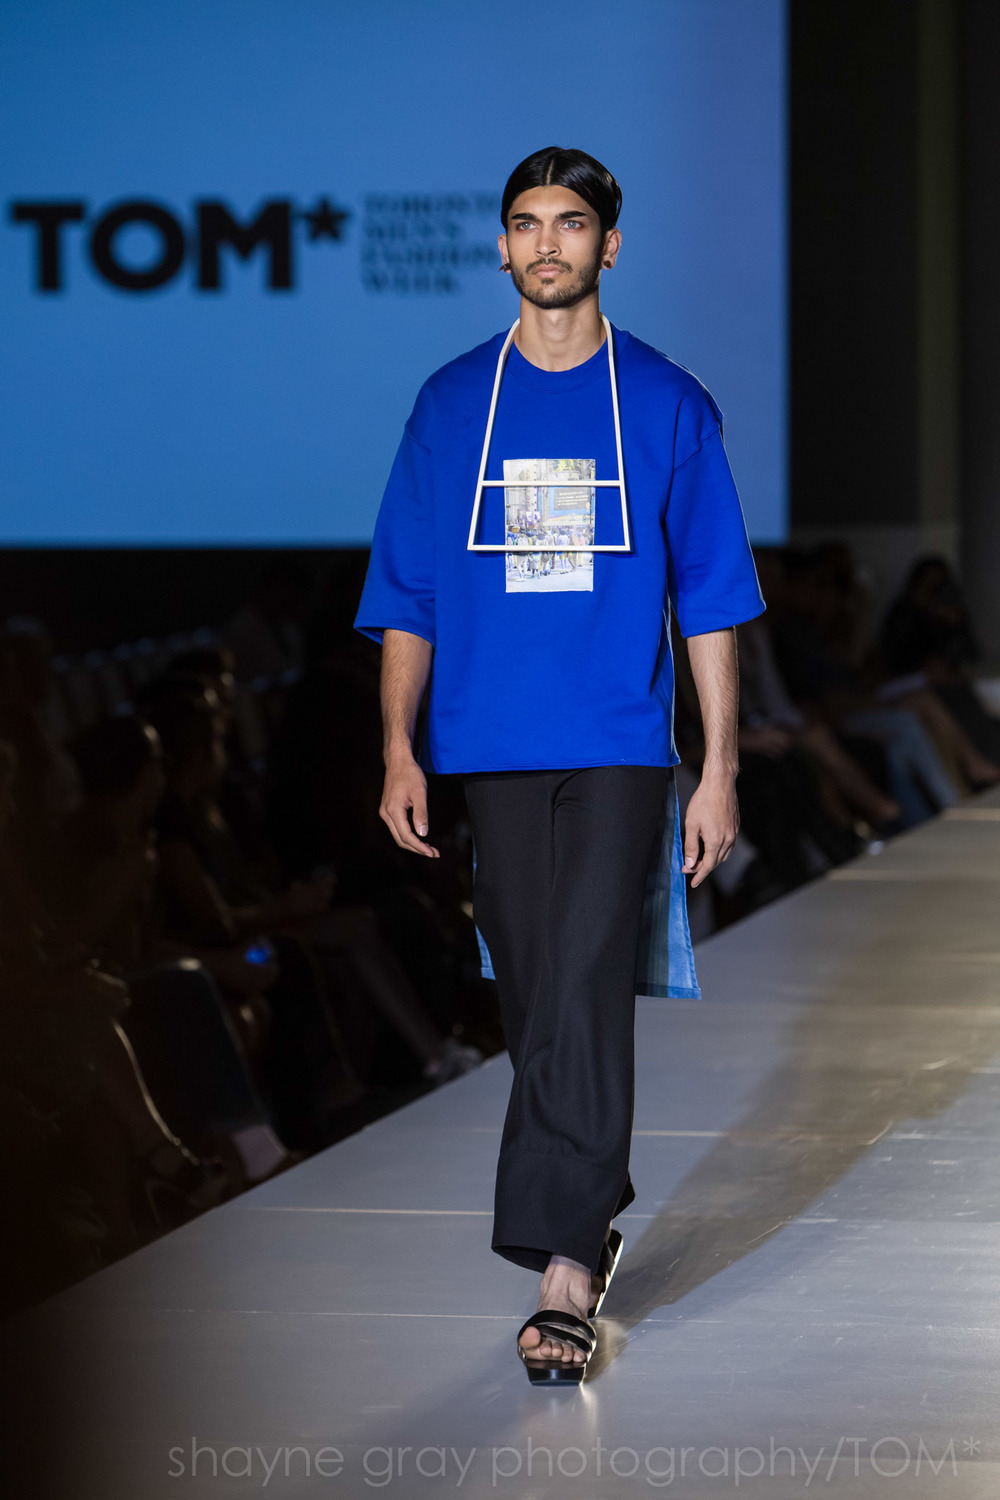 Shayne-Gray-Toronto-men's-fashion_week-TOM-wrkdept-8686.jpg